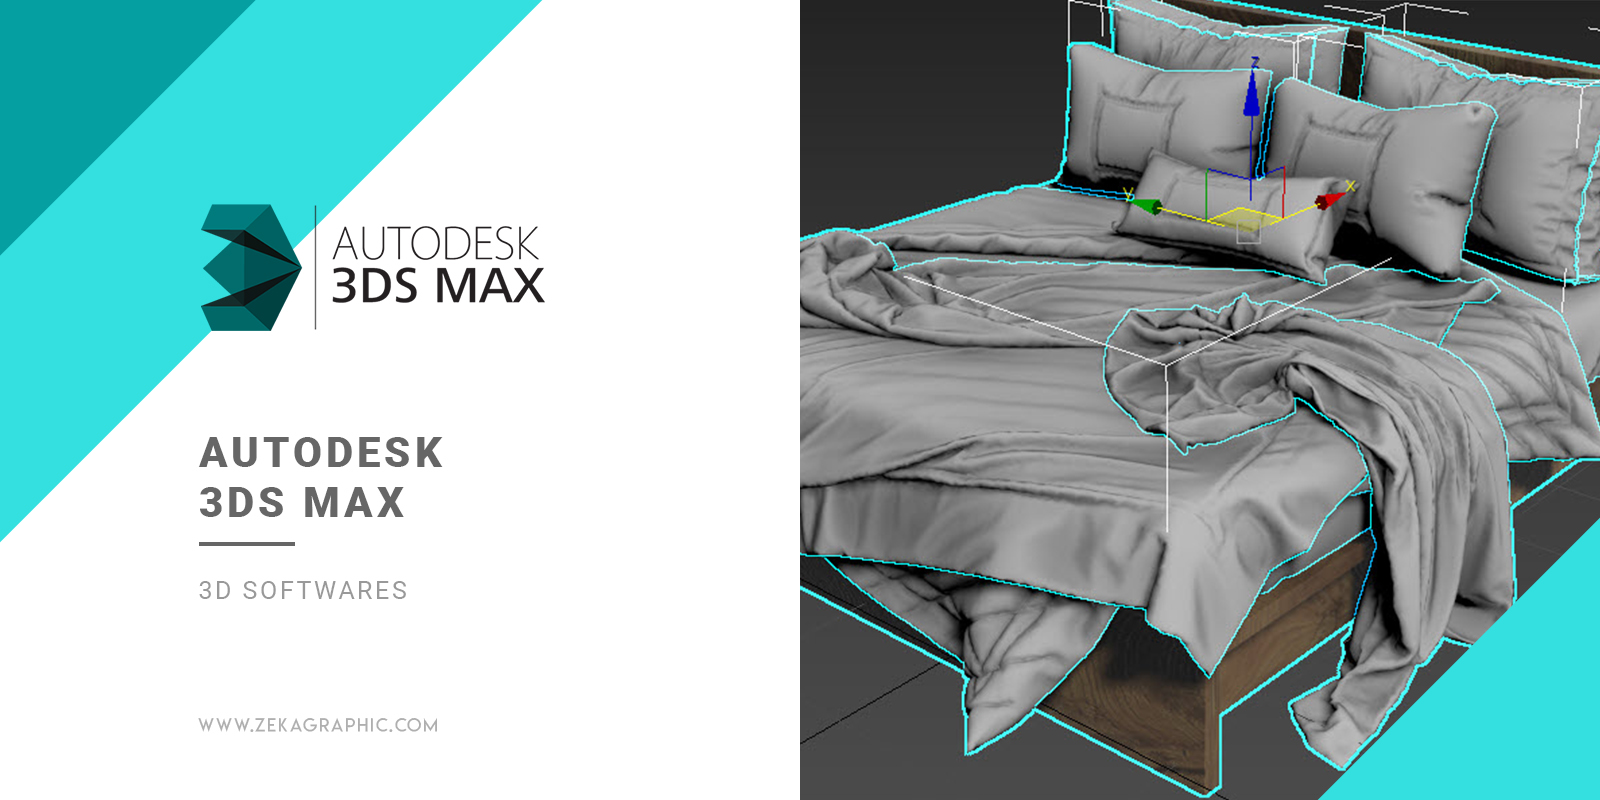 Autodesk 3DS Max 3D Software for Graphic Design